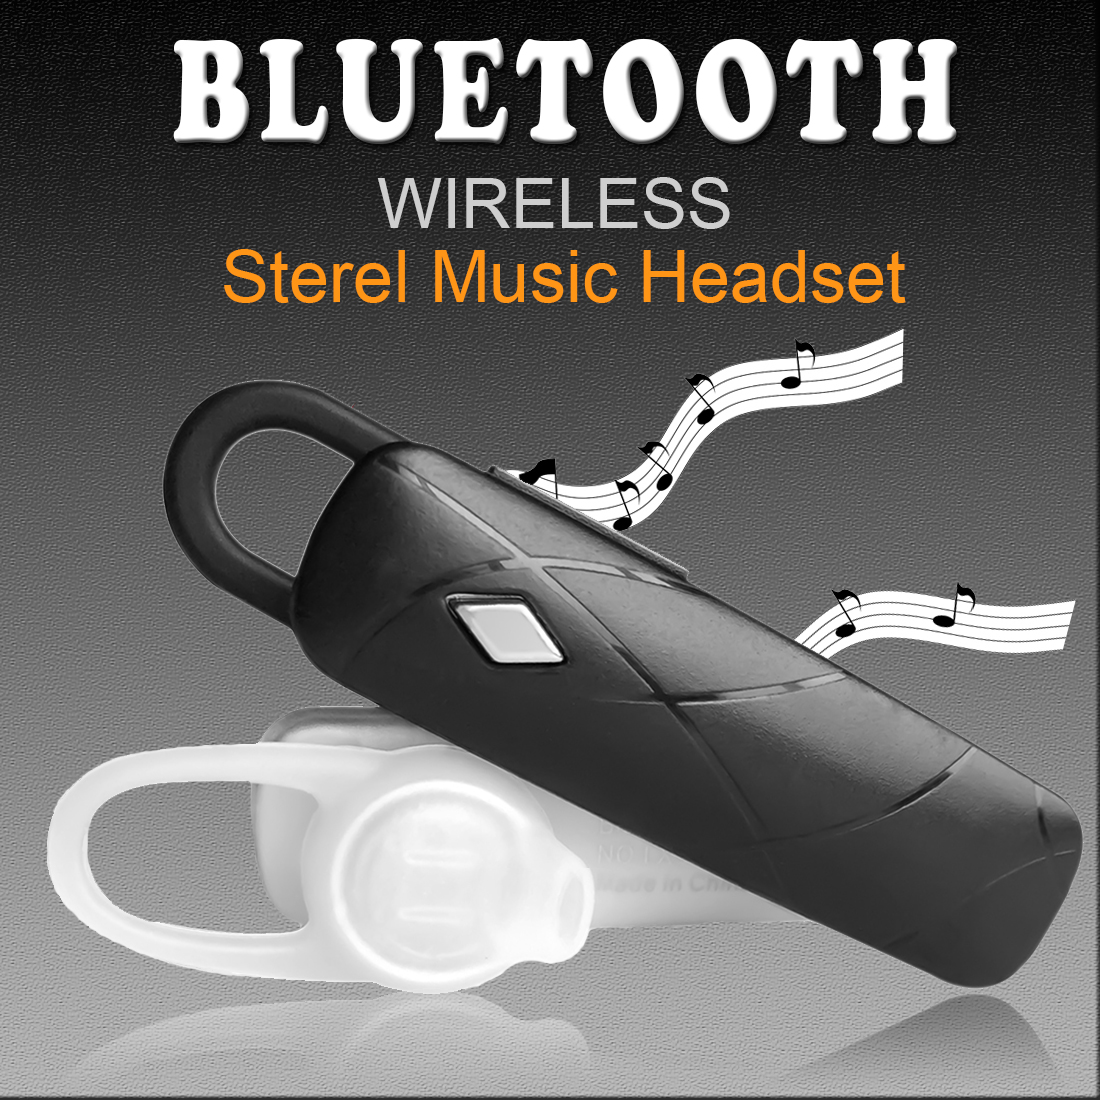 MAIF Stereo Bluetooth Headset Headphone Wireless Earphone with Mic Sport Music Earpiece For iPhone Android All Smart Phone qcy sets q26 mini business headset car calling wireless headphone bluetooth earphone with mic for iphone 5 6 7 android